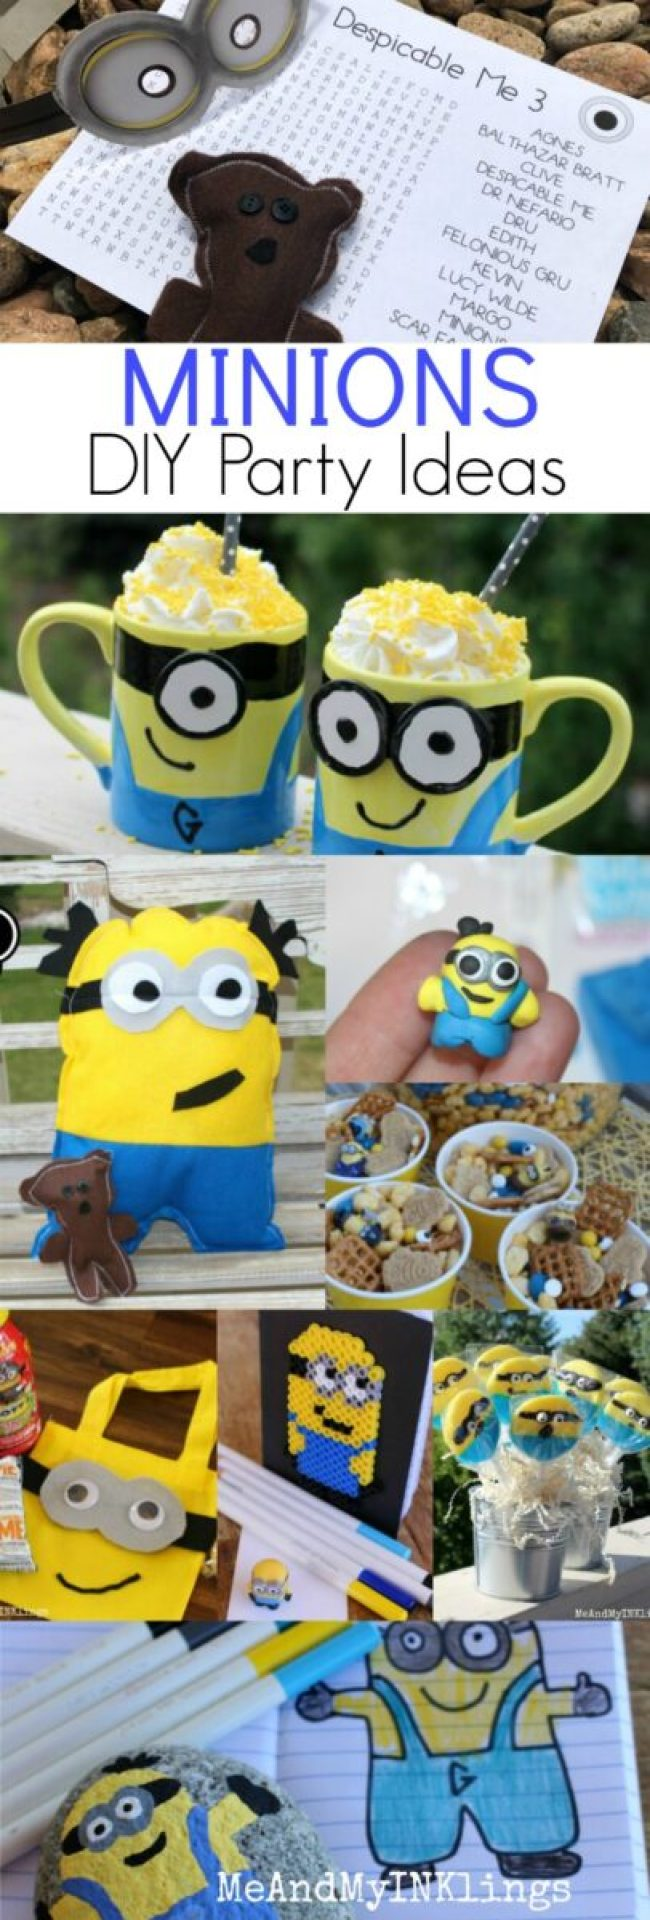 Diy Minion Party Ideas And A Printable Laura Kelly S Inklings